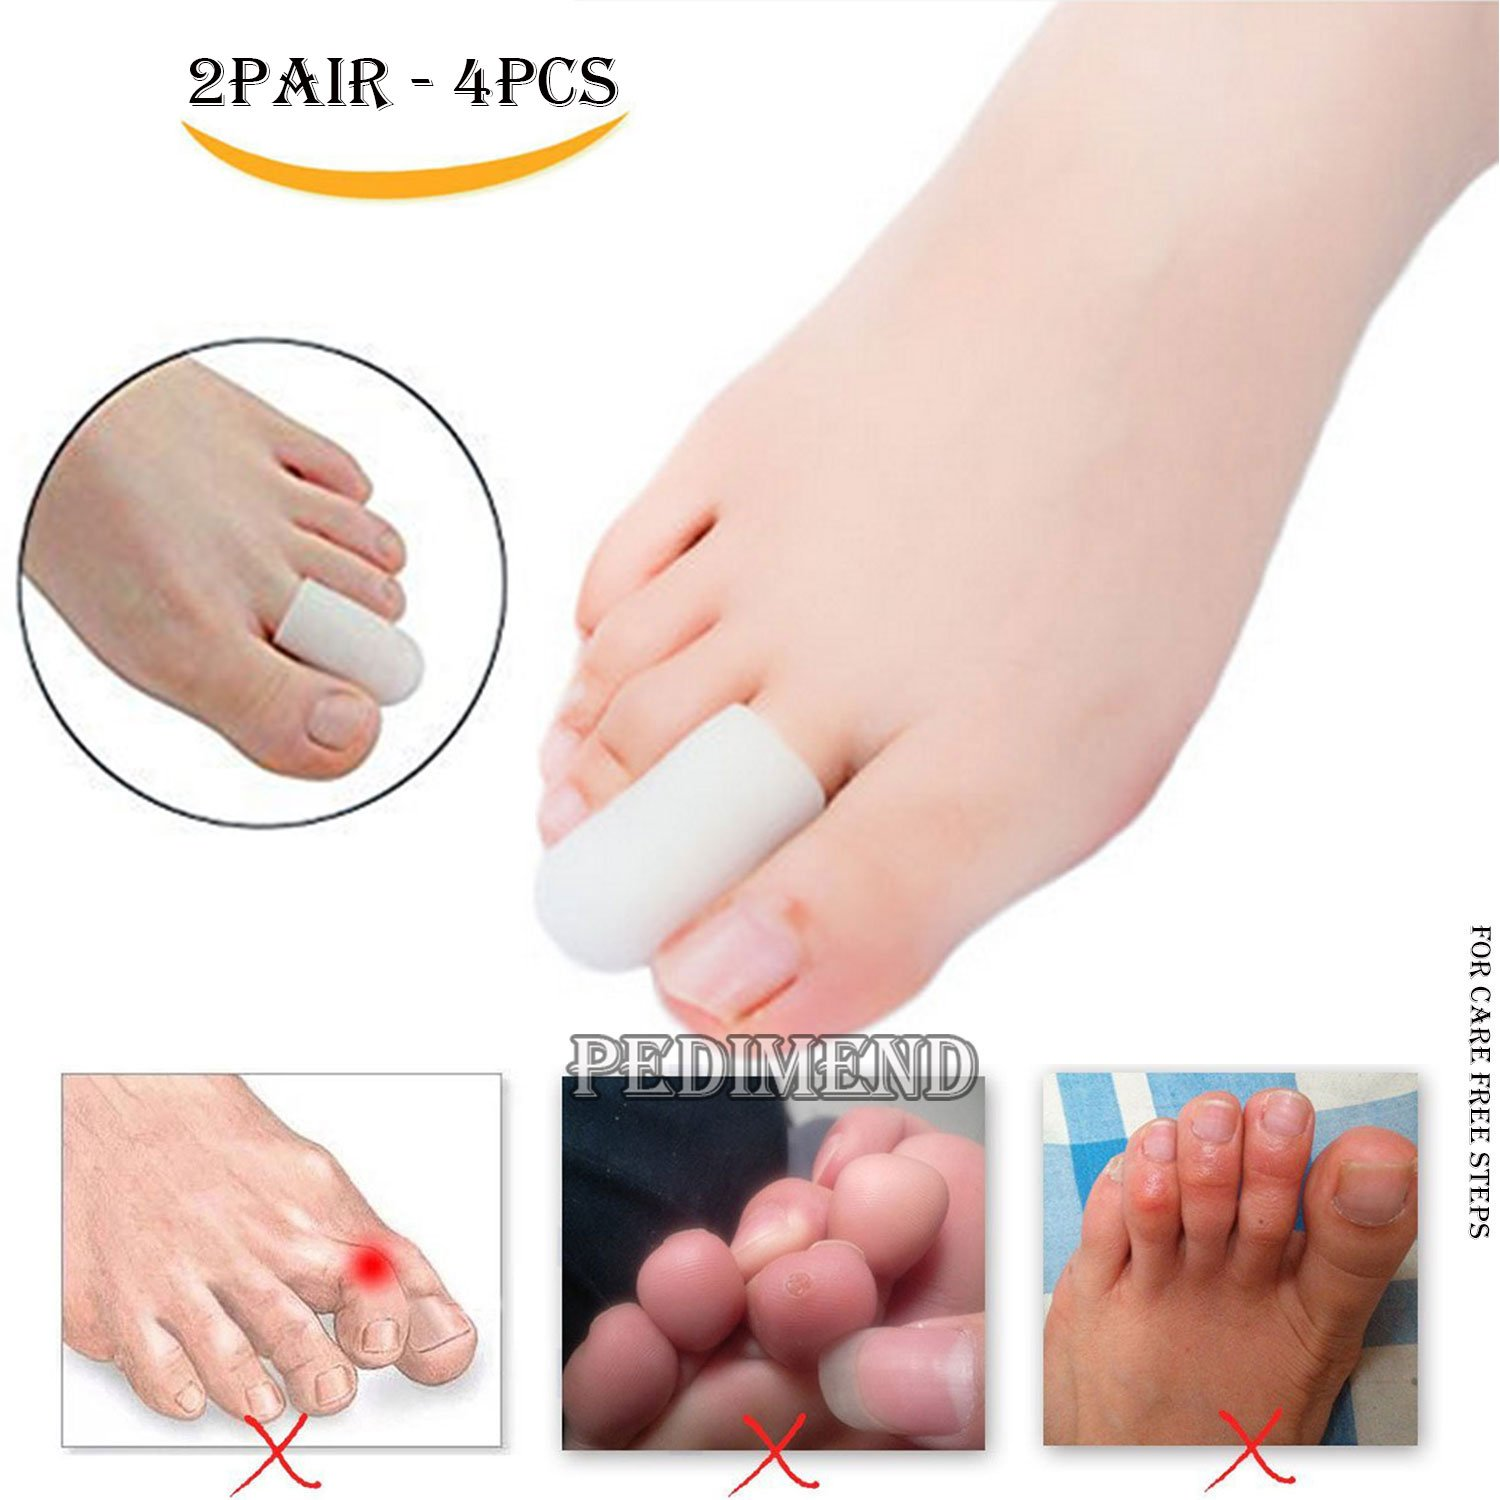 4PCS of Silicone Gel Finger Sleeves Protector by PEDIMEND™ - Toe Caps Protector - Prevents Callus & Blistering – Prevent Rubbing & Irritation – Corn Remover - Toe Nail Proctors - Foot Care